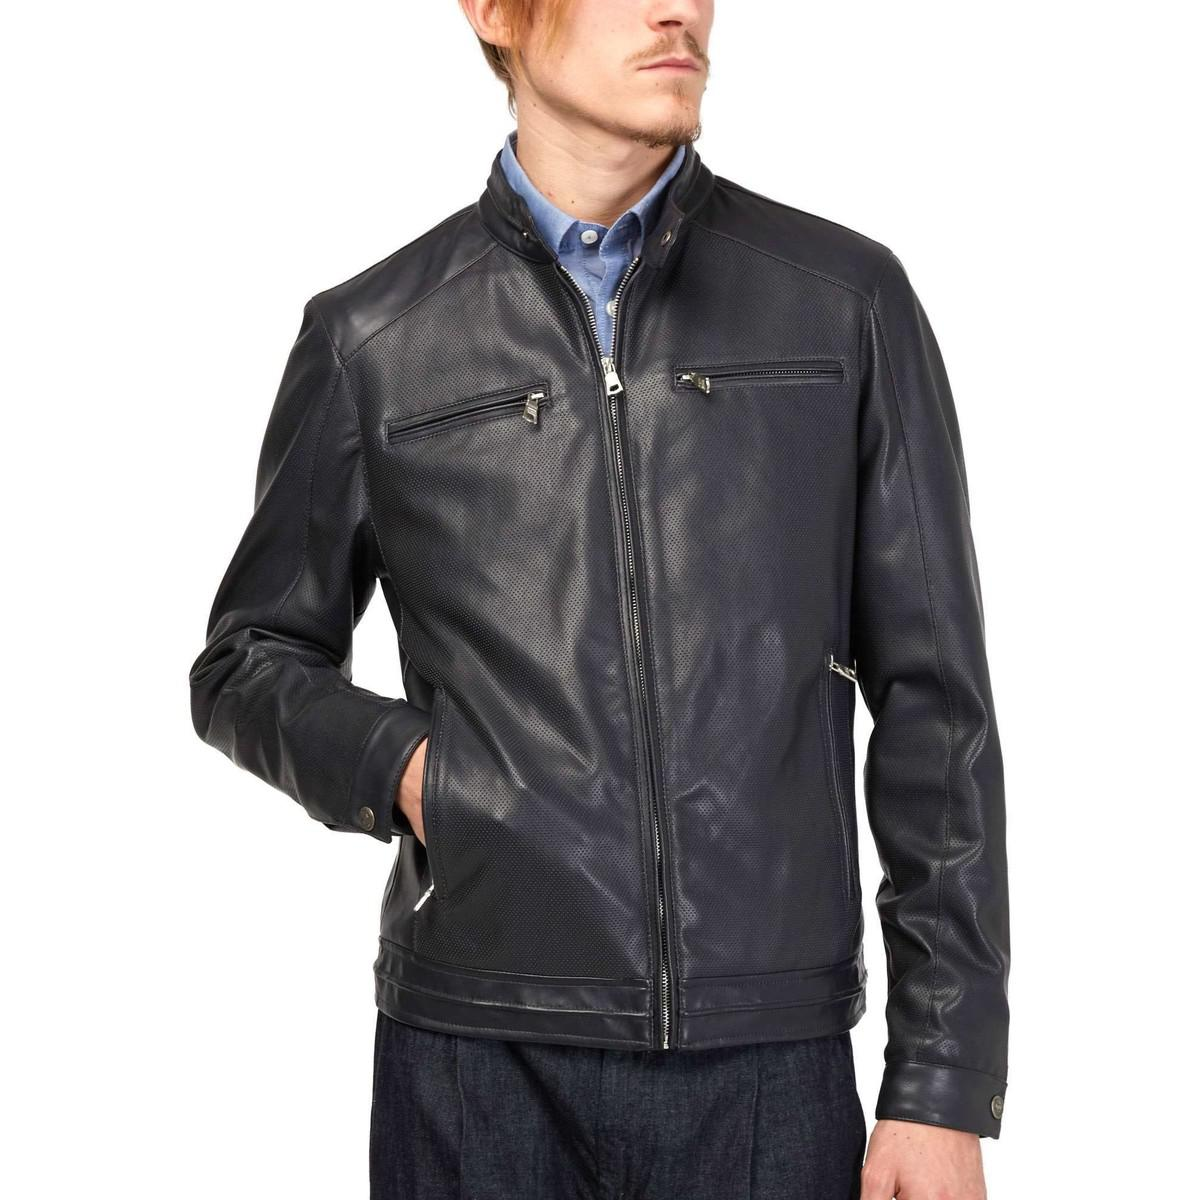 lowest price exquisite craftsmanship replicas 250978 Jacket Man Blue Men's Leather Jacket In Blue